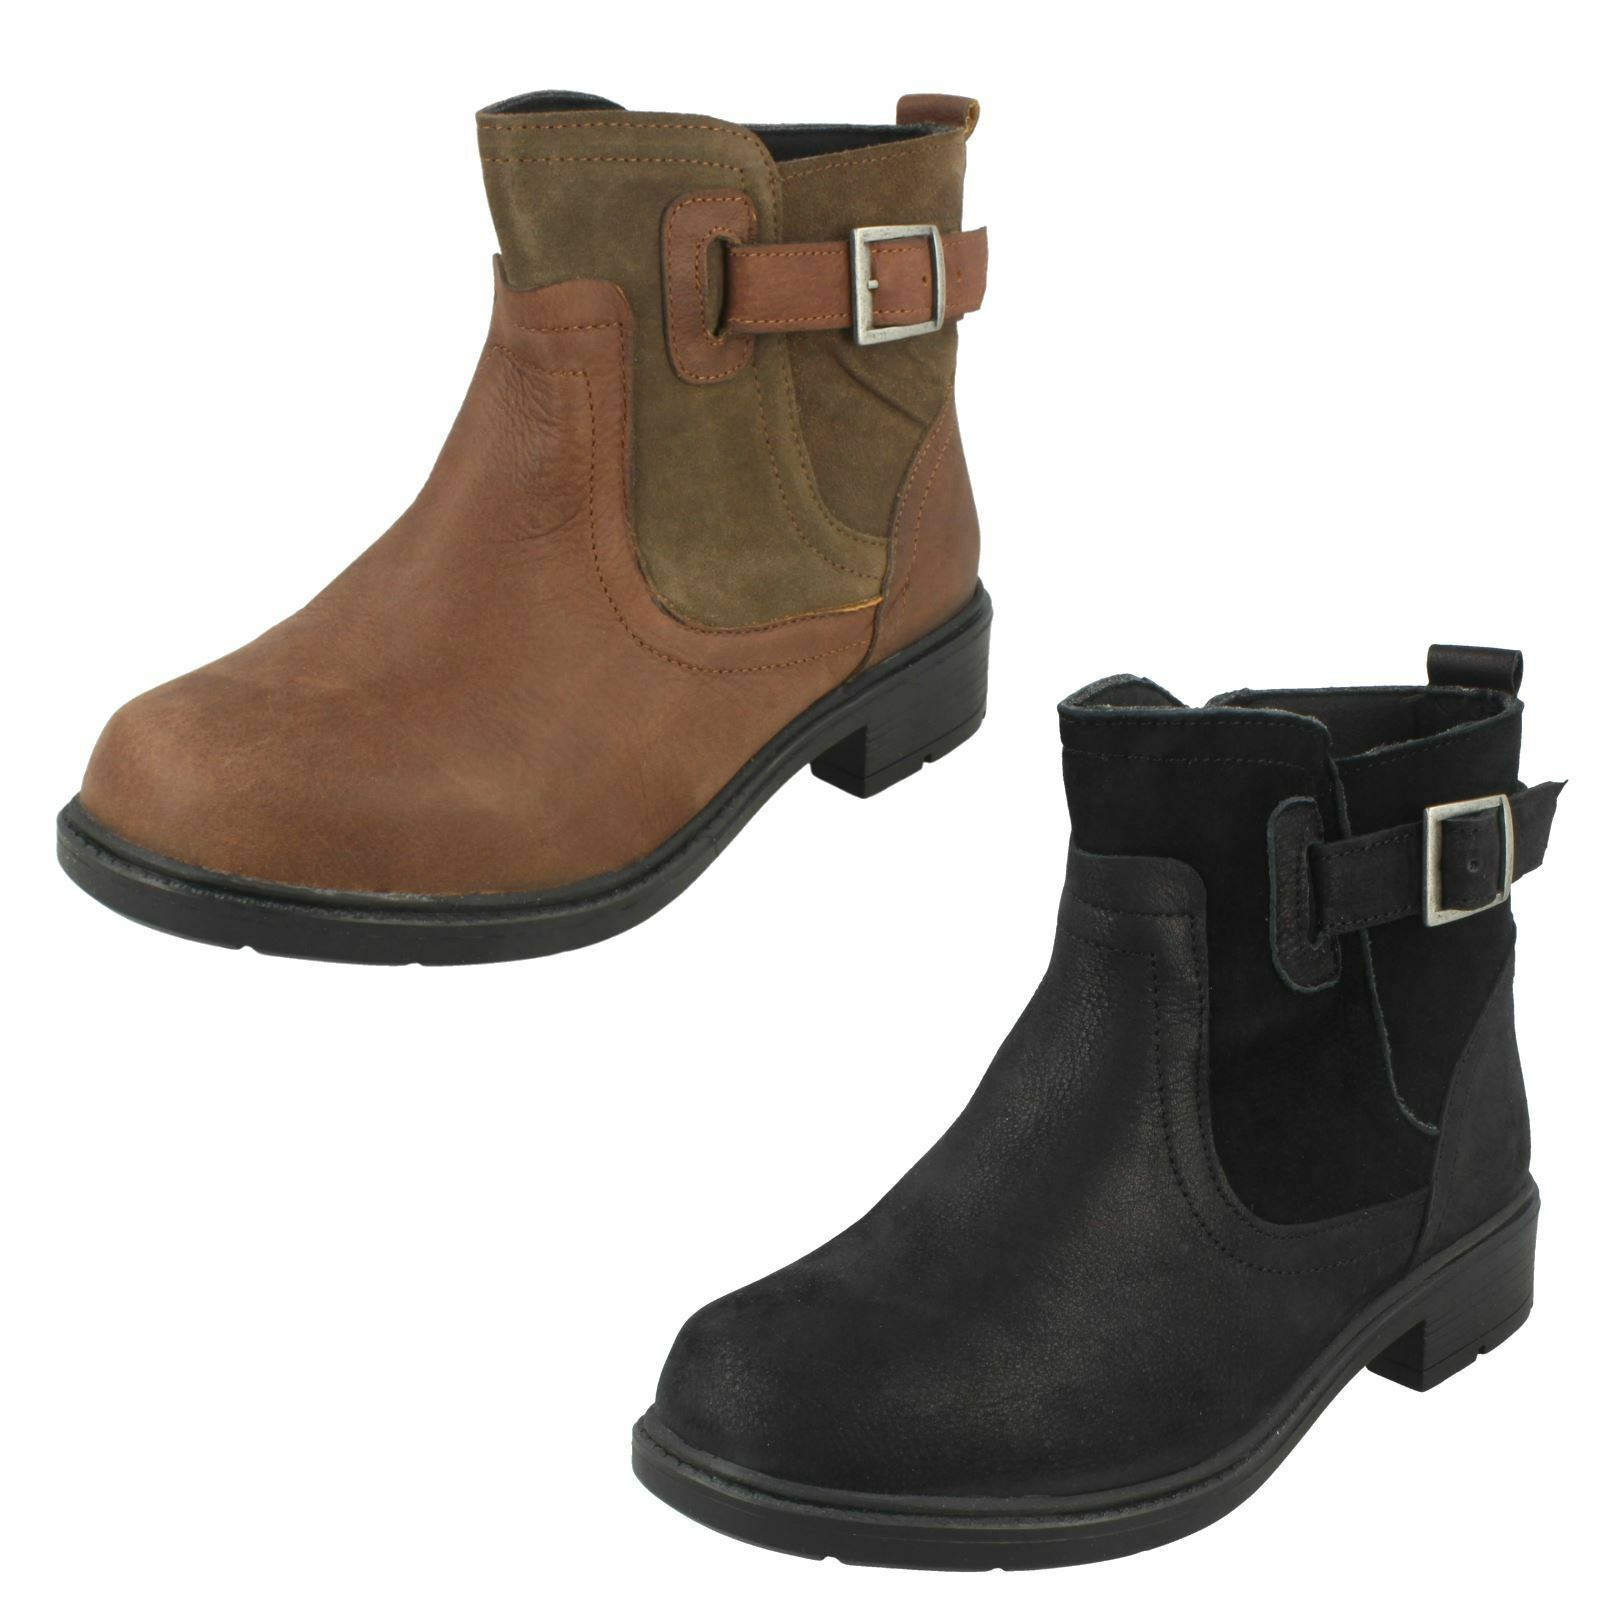 EasyB Ladies Extra Wide Ankle Boots Bernay 78480A